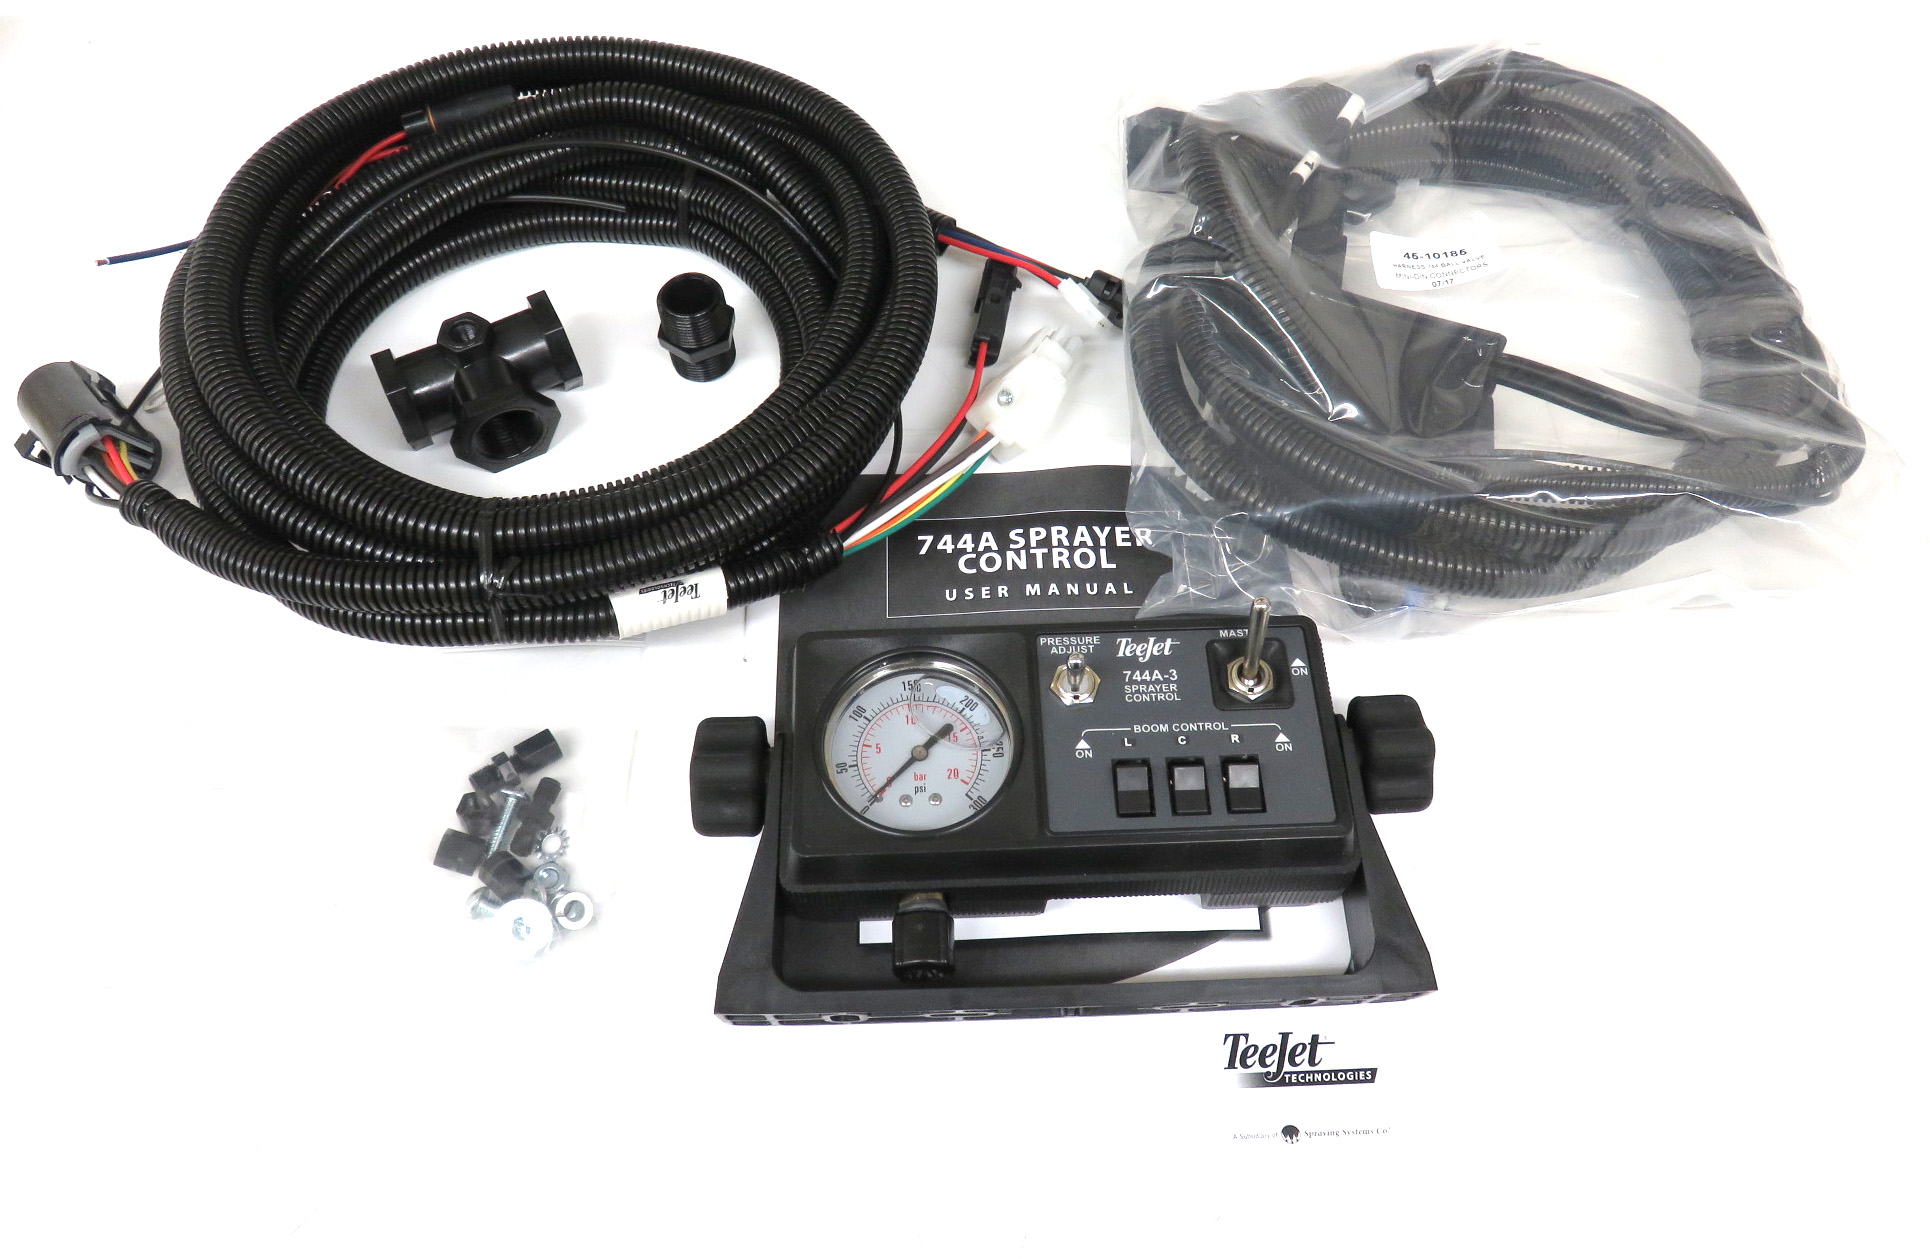 90-50151-md, 744a kit w/300 psi gauge, mini-din ball valve harness, no  regulator, no valves